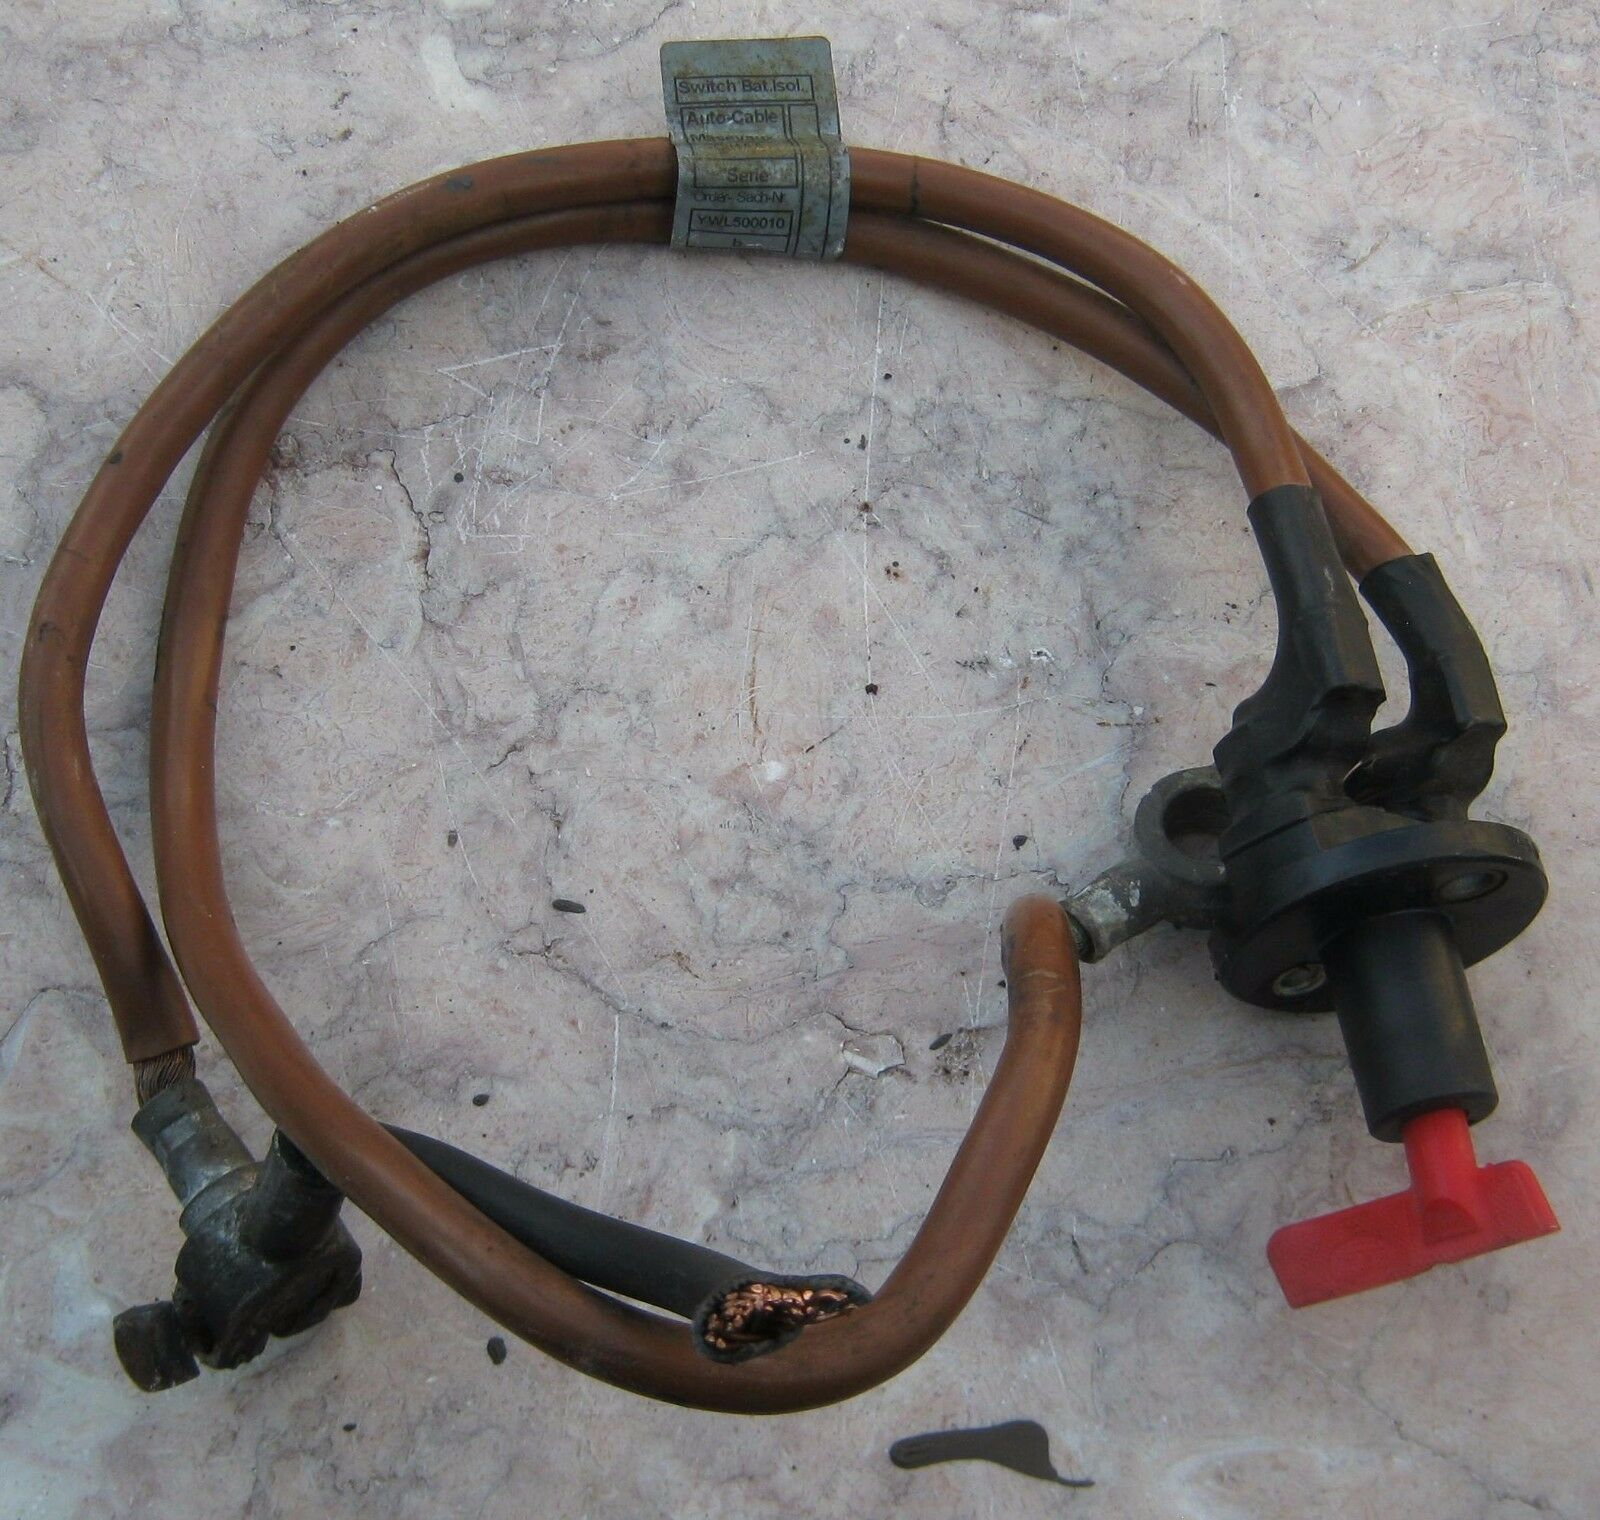 Used Land Rover Battery Cables And Connectors For Sale 1995 Range County Classic Master Kill Switch With Cable